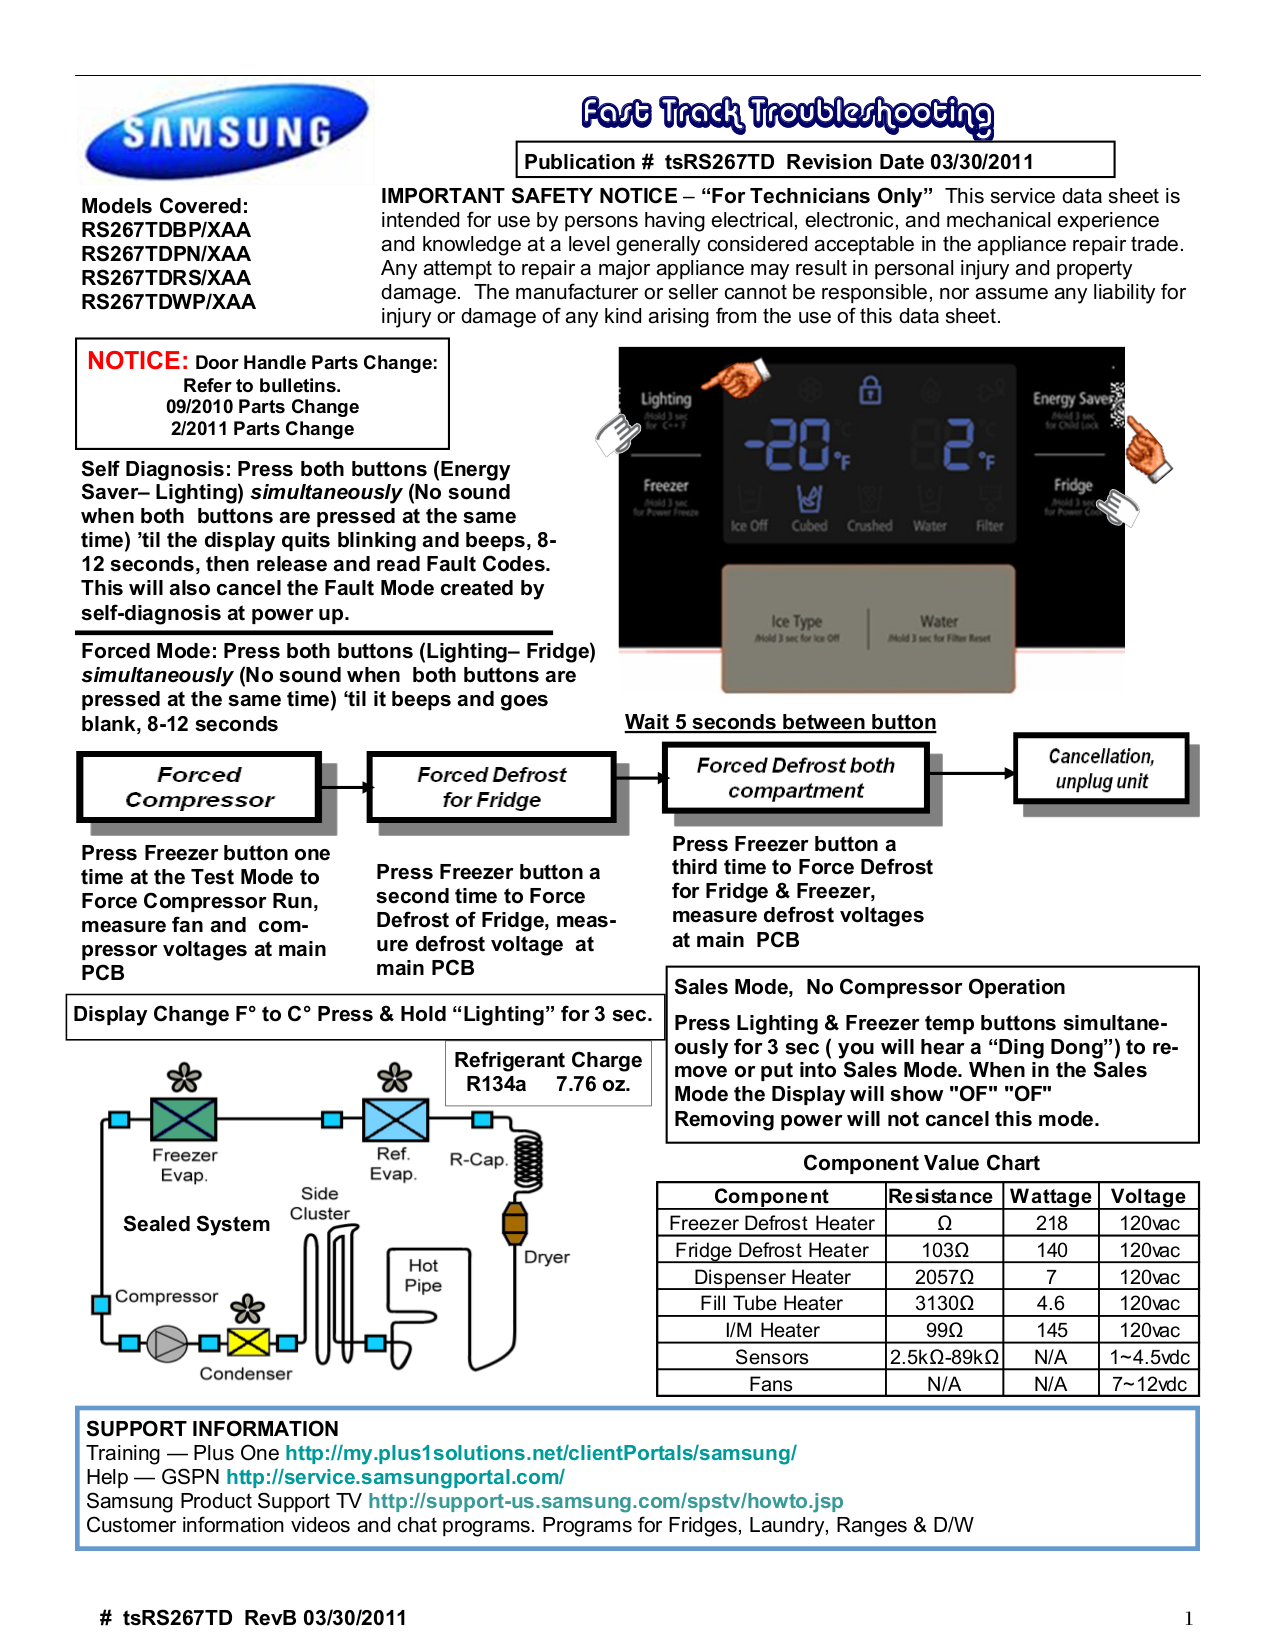 pdf for Samsung Refrigerator RS267TD manual